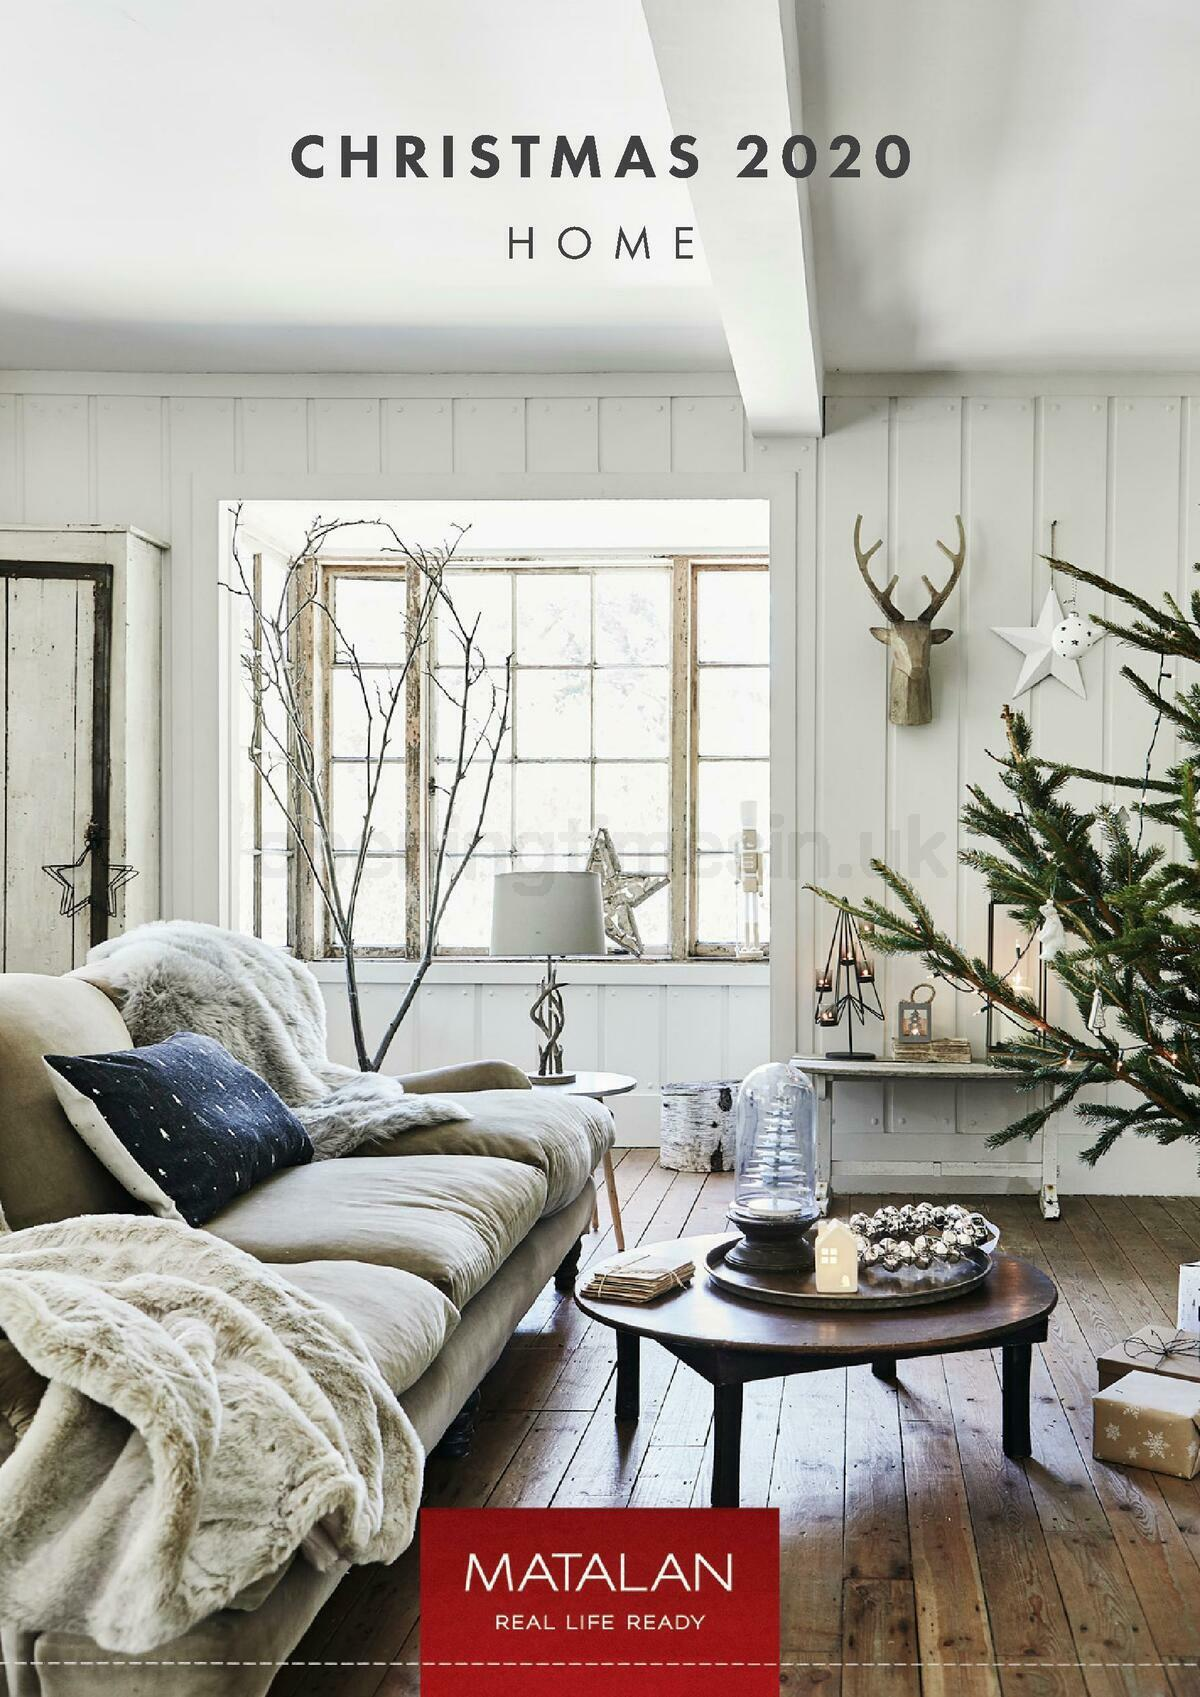 Matalan Christmas Home 2020 Offers from October 1